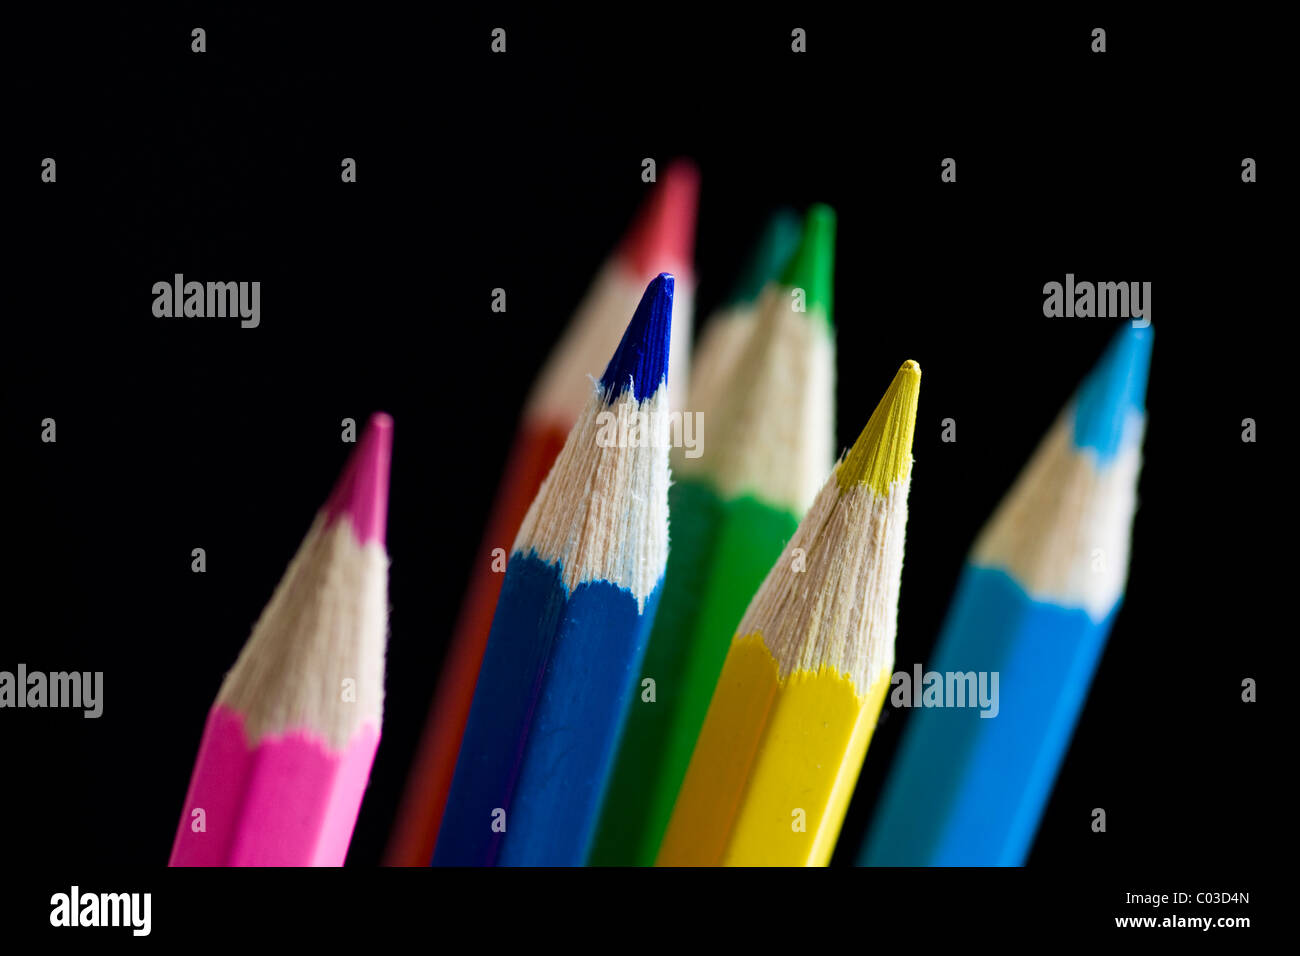 Color pencils on black background. Selective focus. - Stock Image